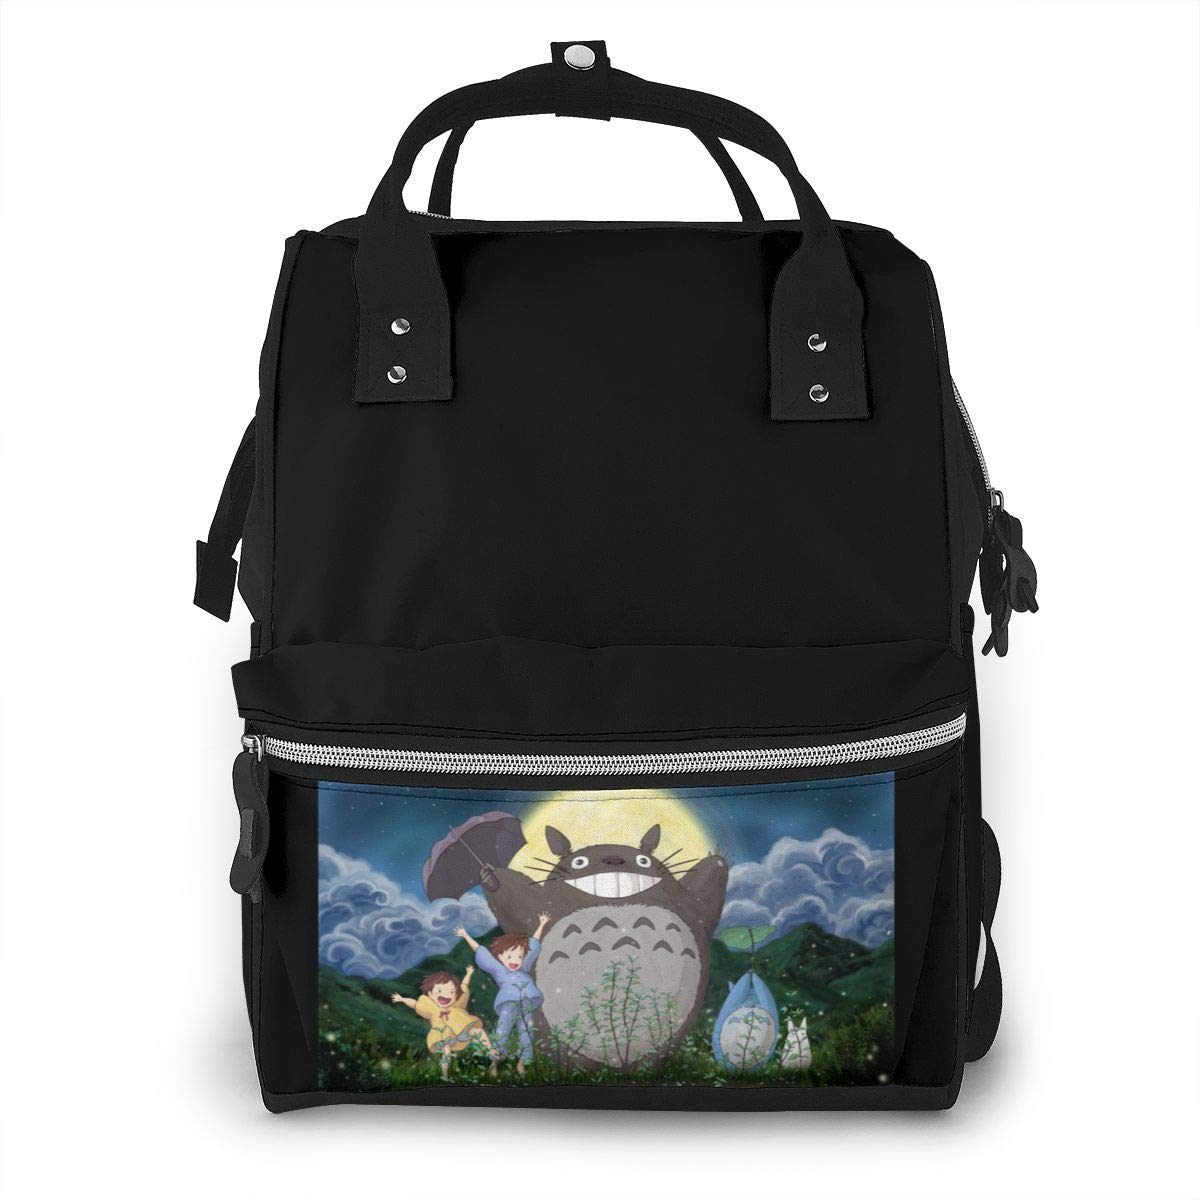 Miyazaki Hayao-Totoro Diaper Bag Multi-Function Waterproof Travel Backpack Nappy Bags for Baby Care Mummy Backpack